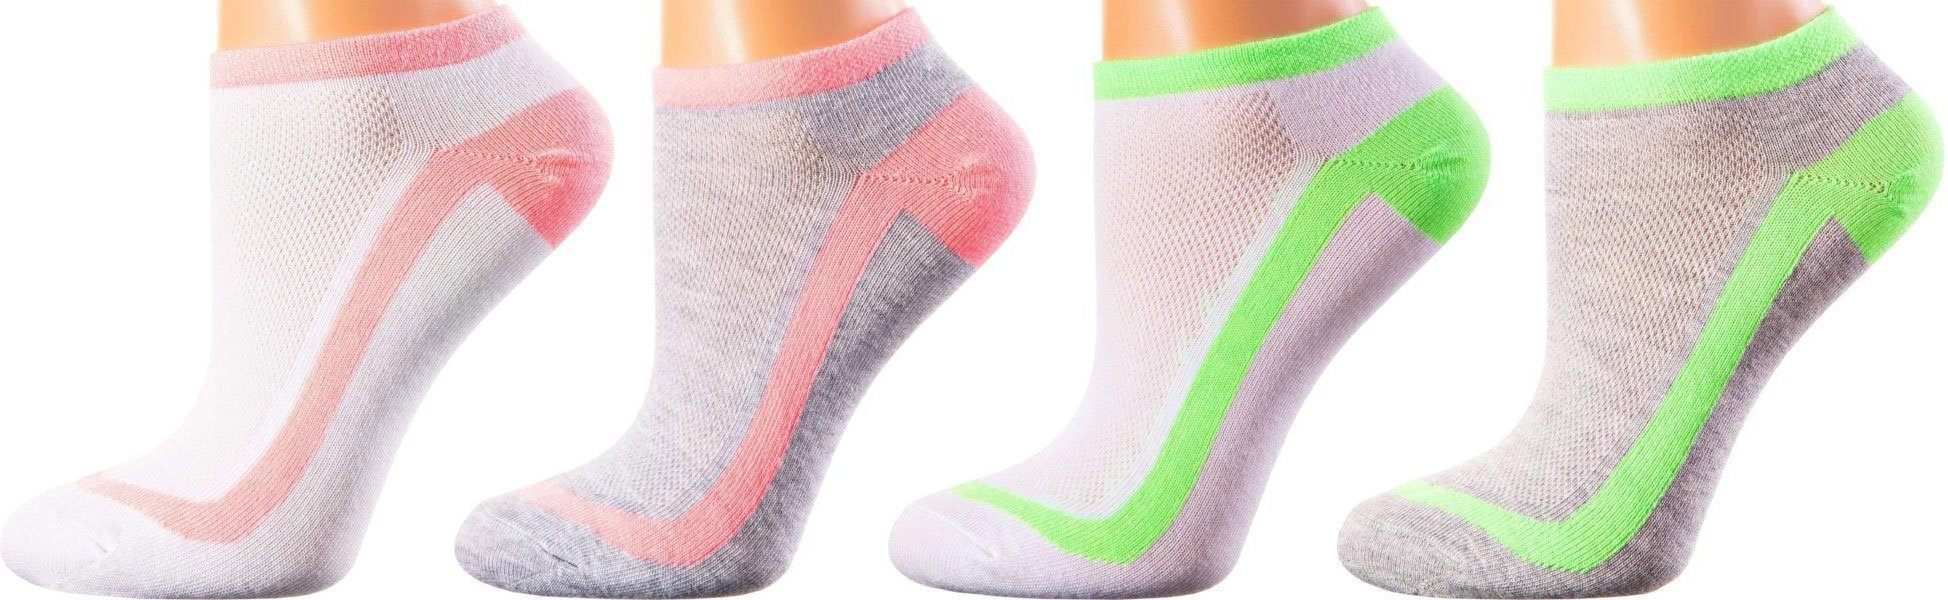 Copenhagen Collection - Mercerized Cotton Socks - Quarter Length - Sizes: S-L